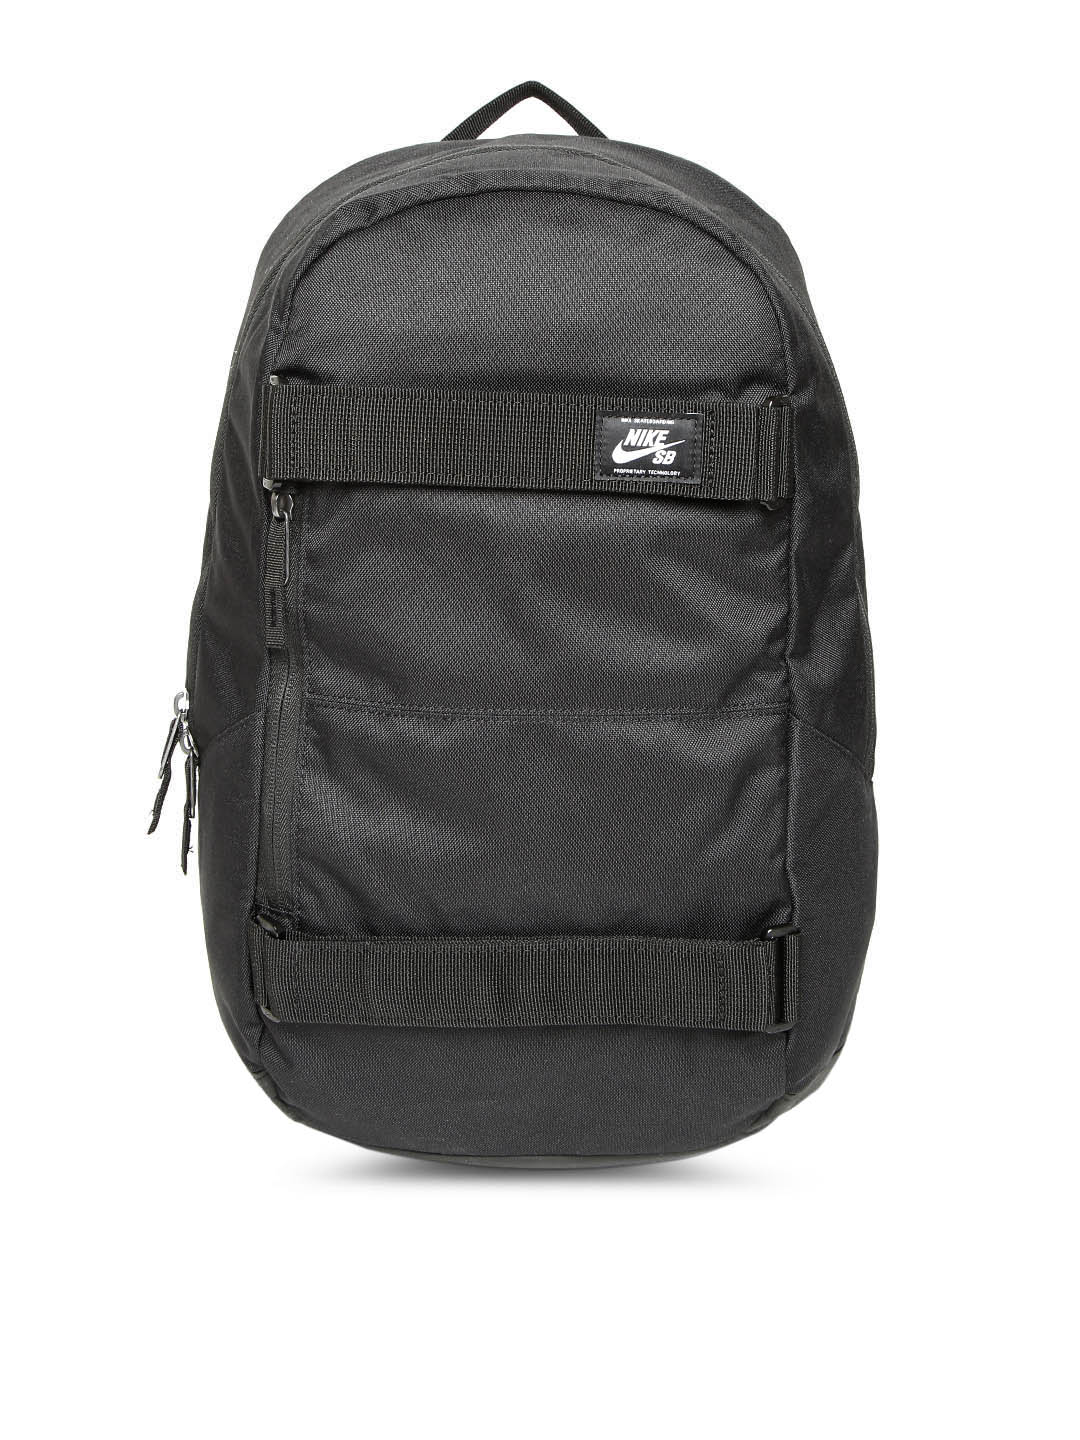 0d843c4a06 Nike Bags - Buy Nike Bag for Men